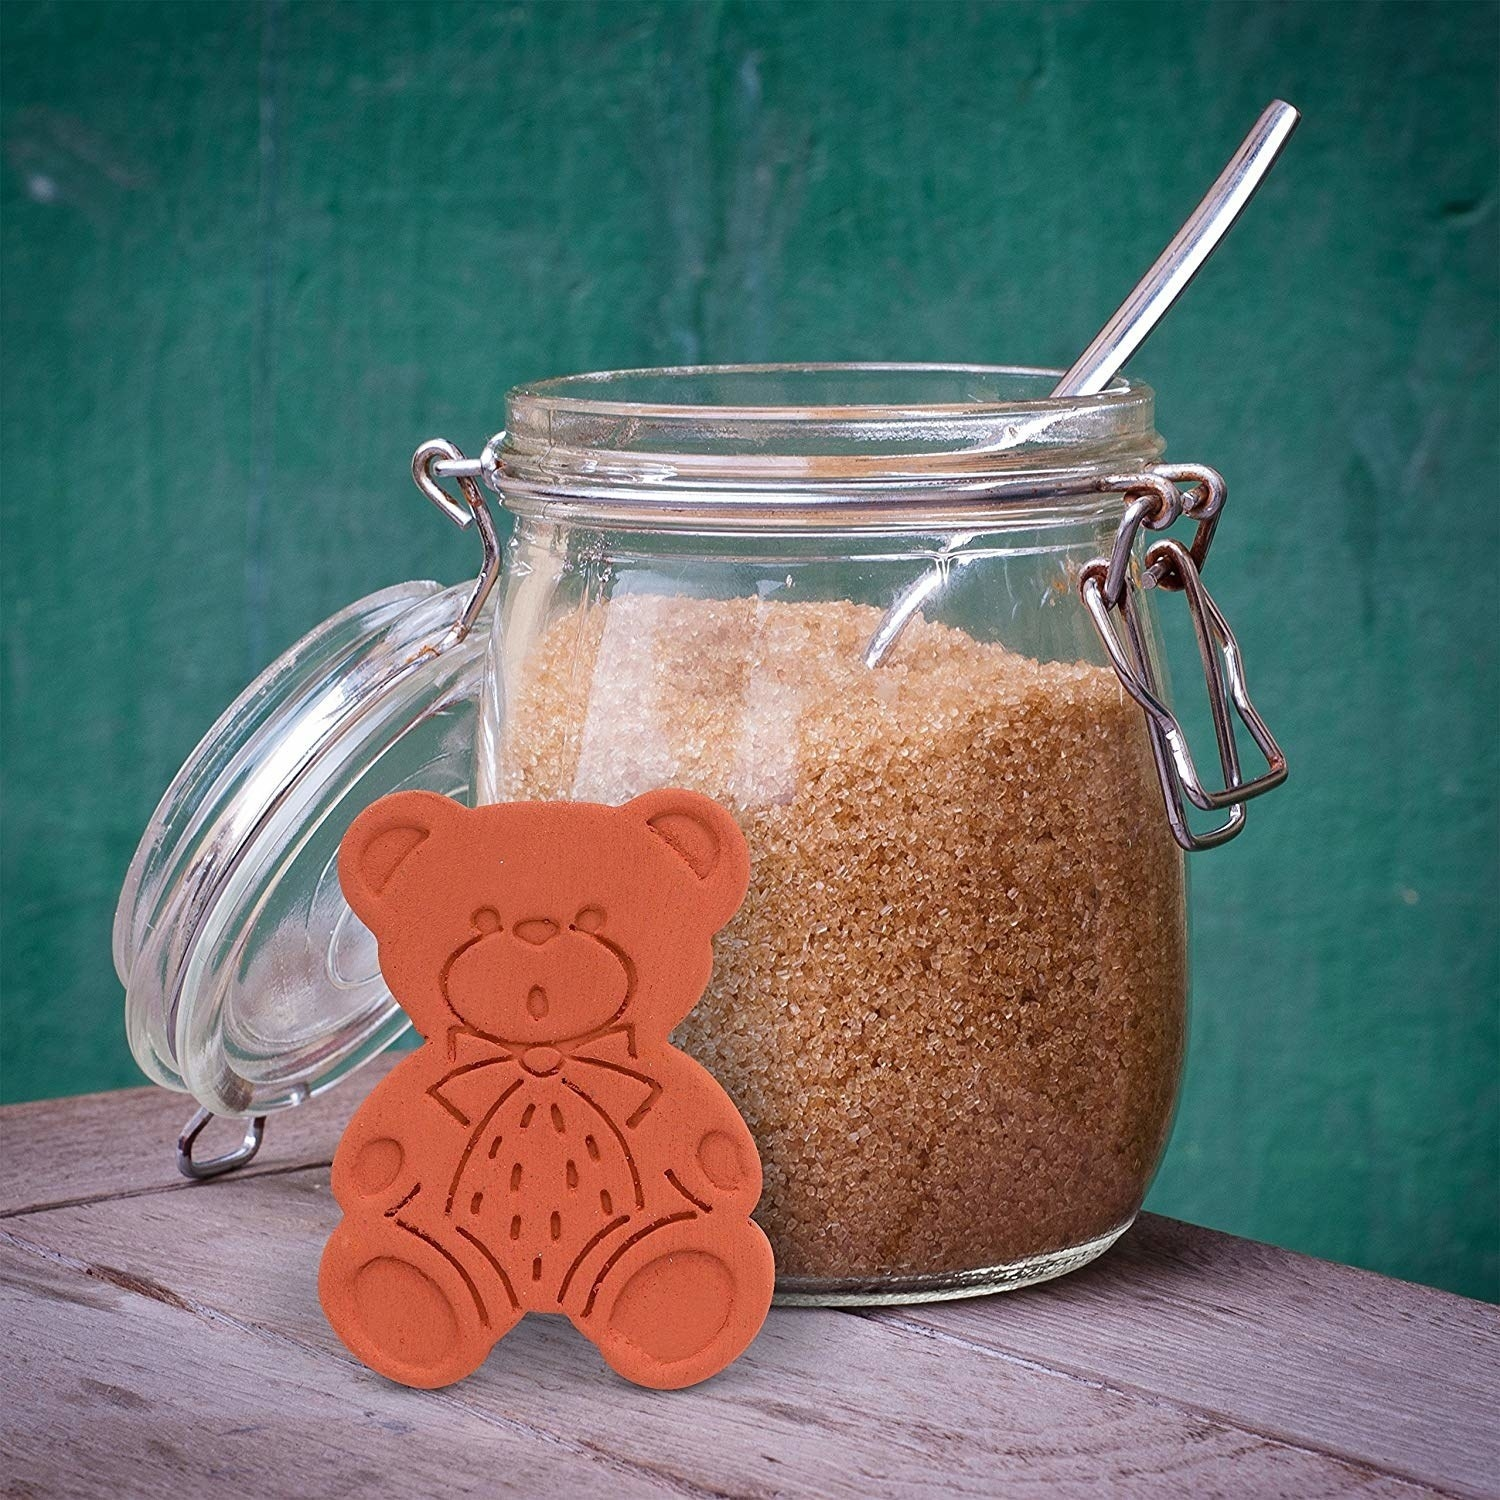 The small terracotta bear, next to a jar of brown sugar